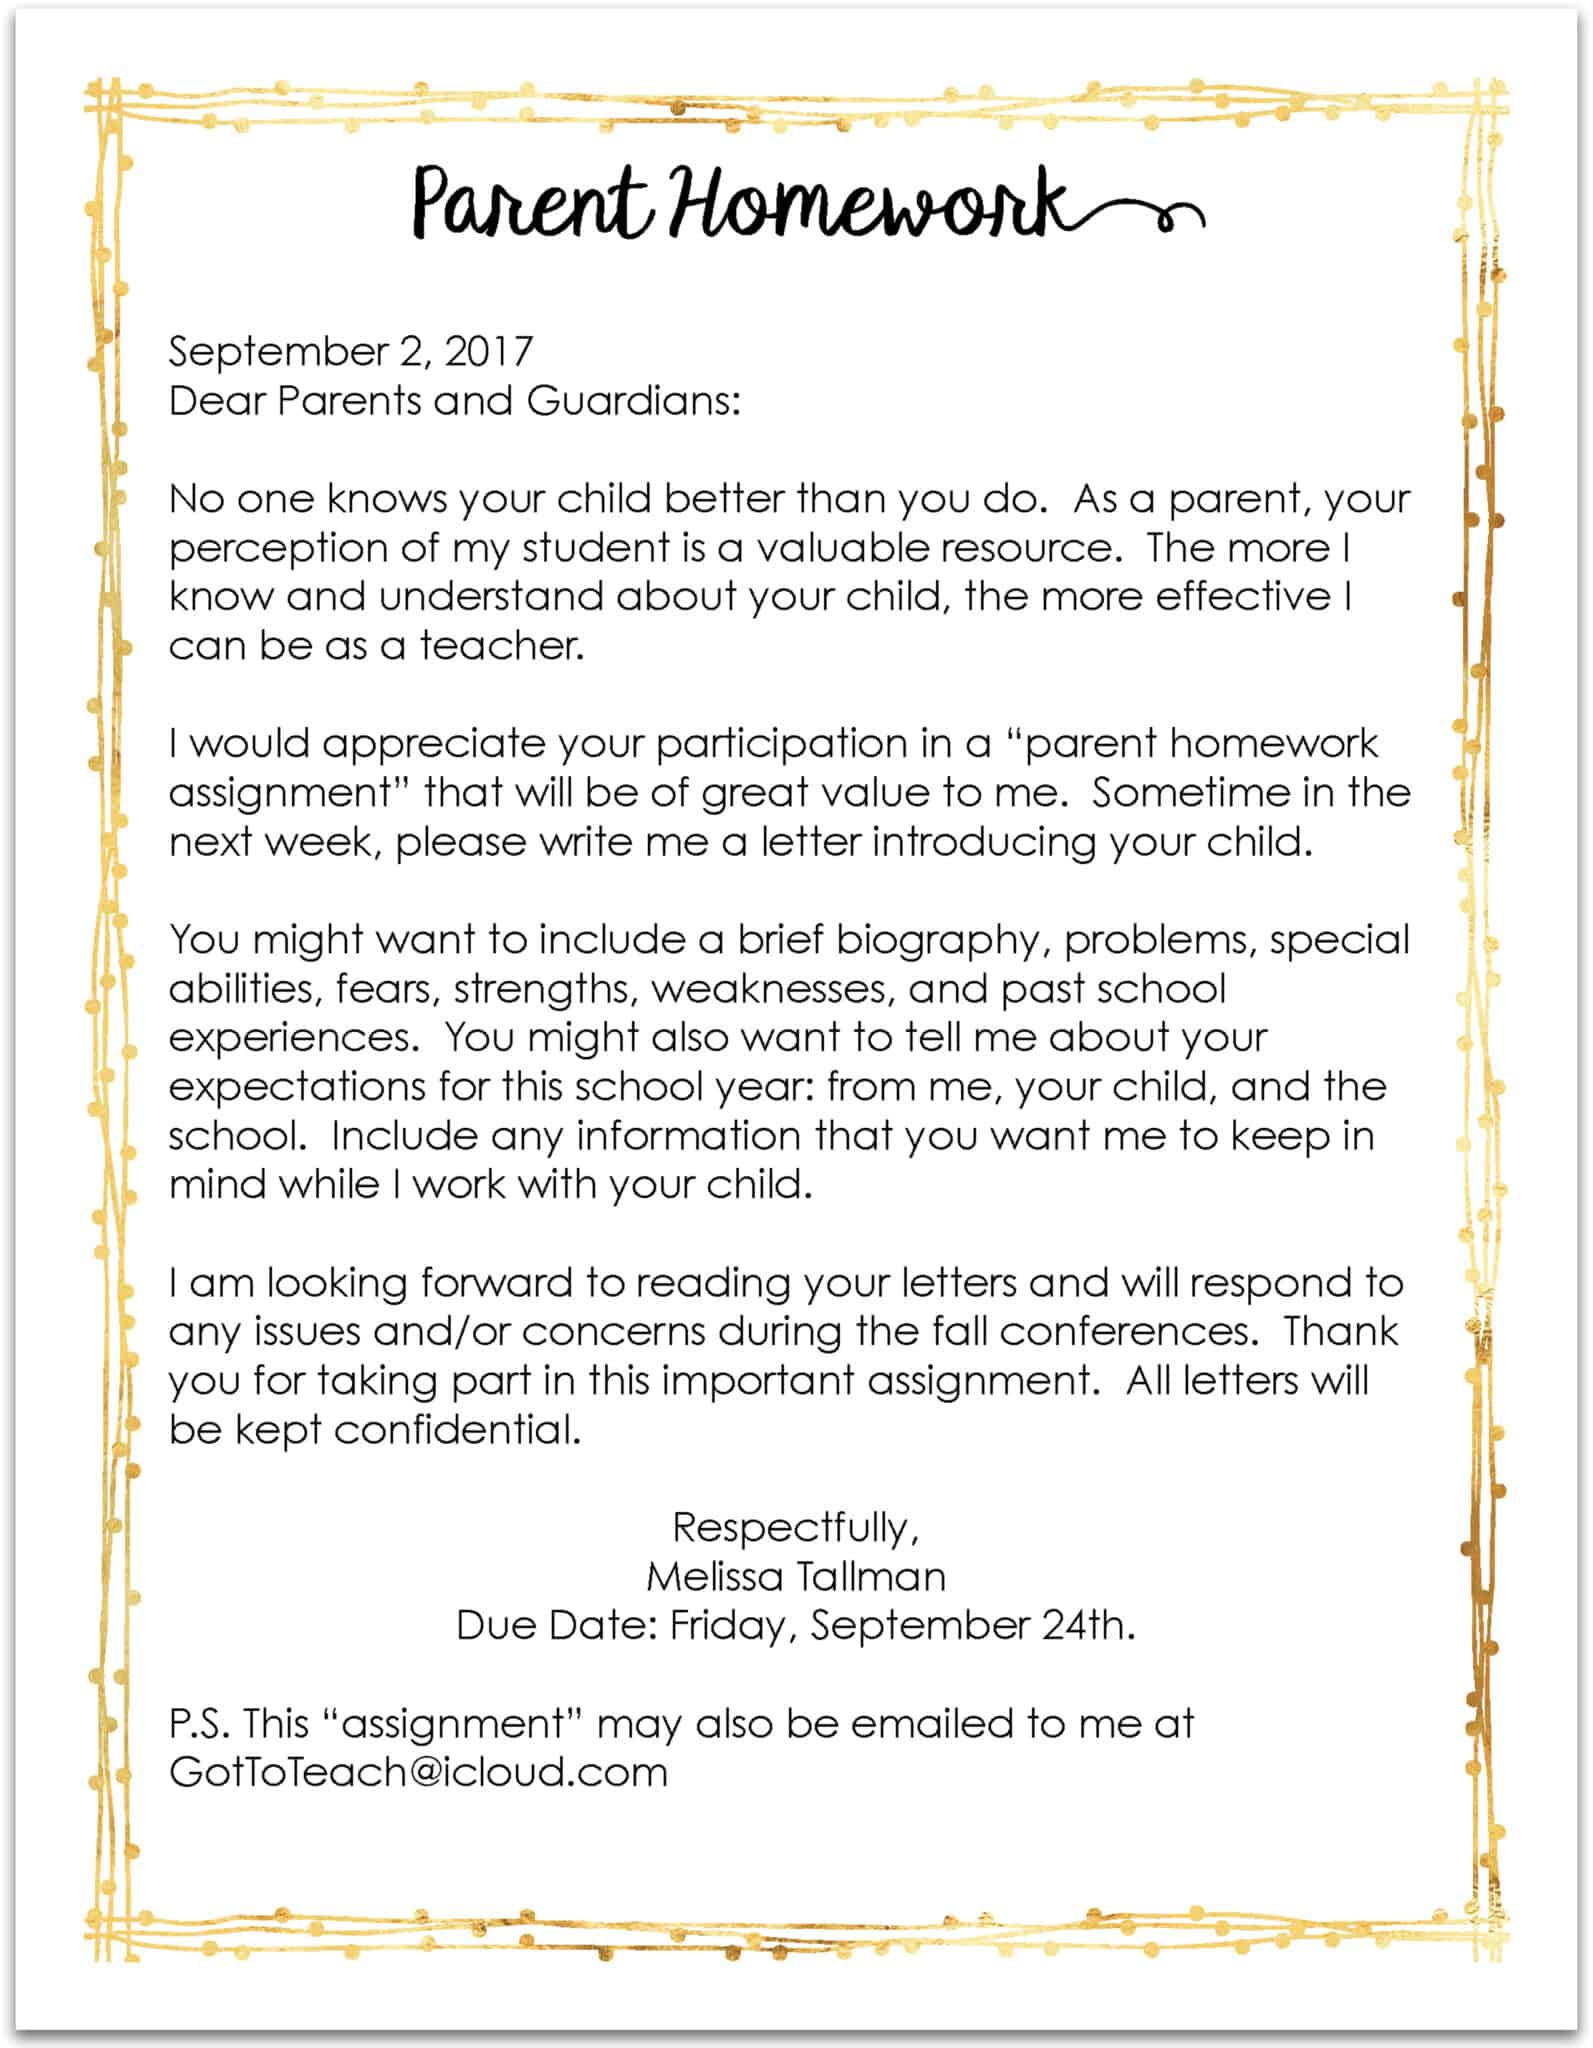 Teachers you must send this letter home on the first day of school i call this letter parent homework which the students get a kick out of before i get into why i think every teacher should send a letter like this home spiritdancerdesigns Images